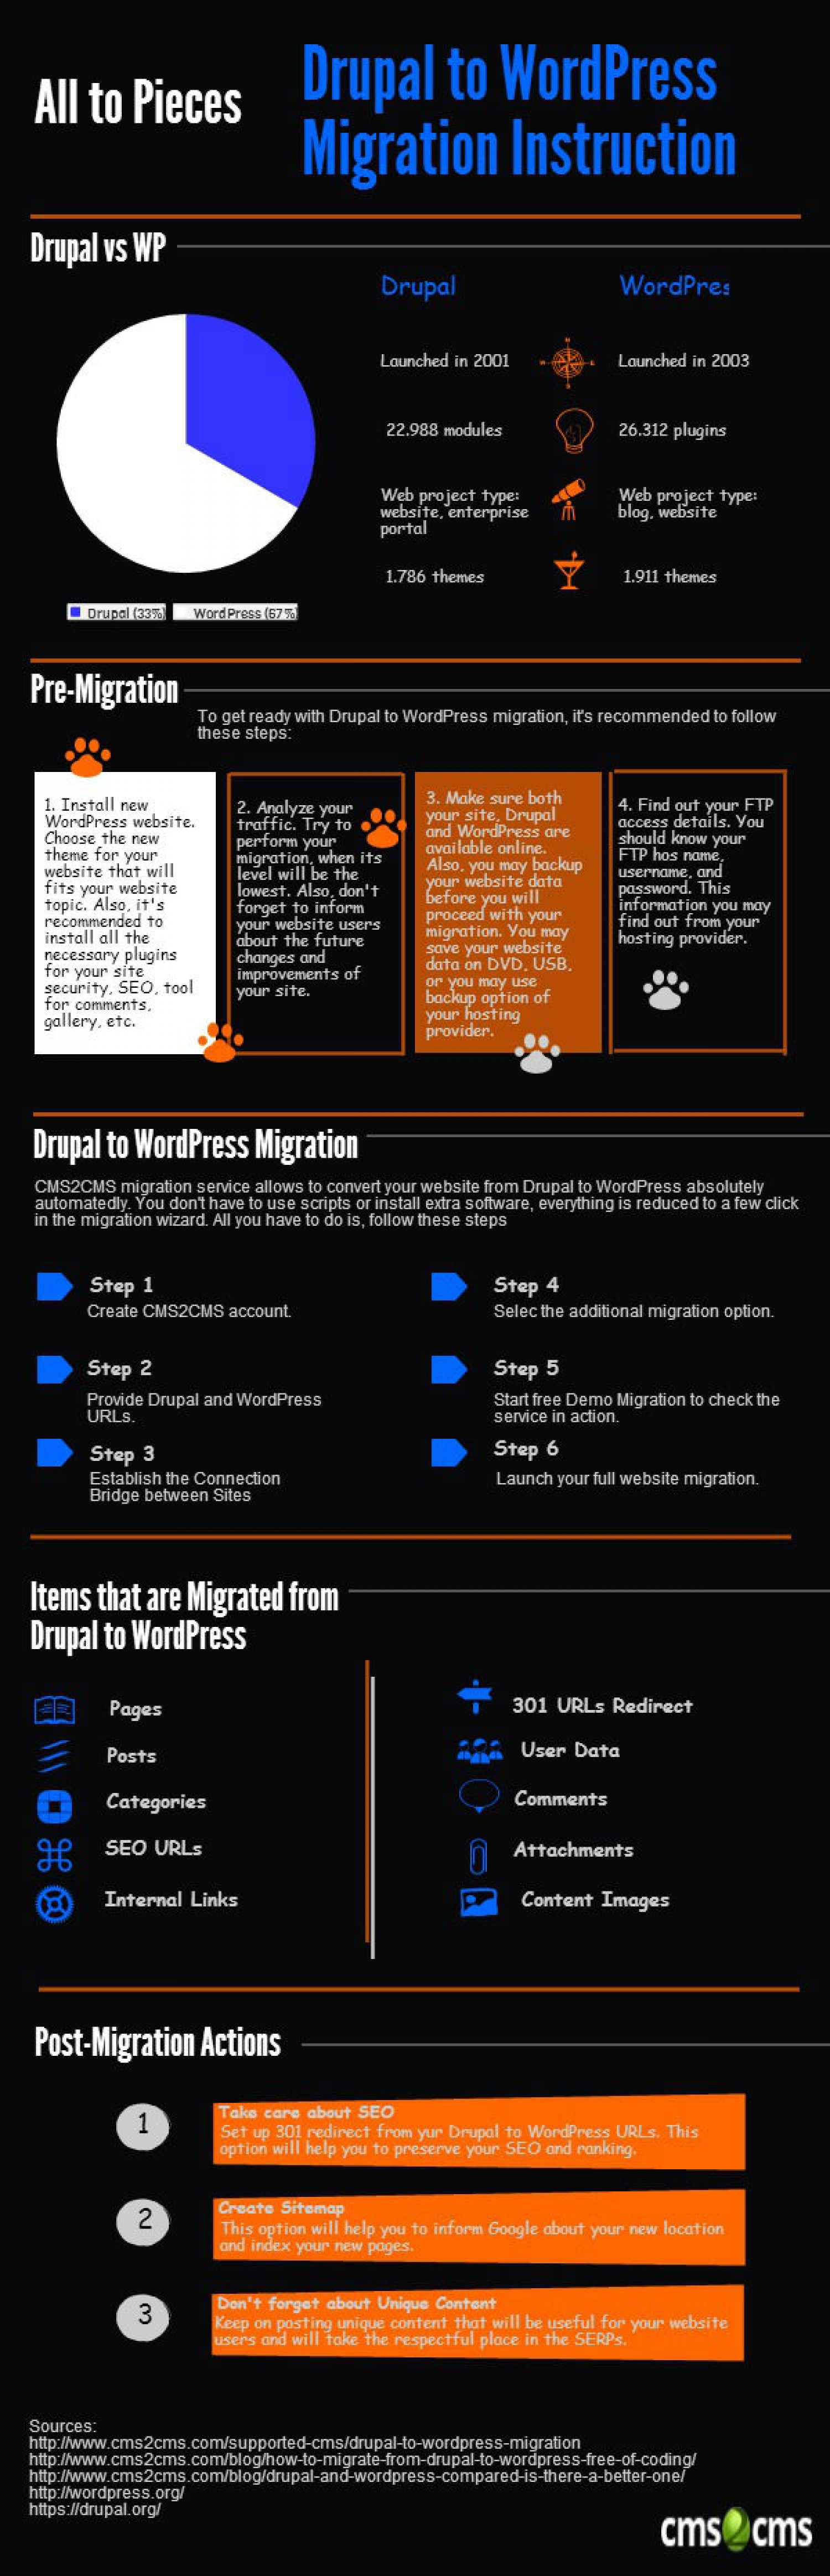 Drupal to WordPress Website Migration Instructions Infographic